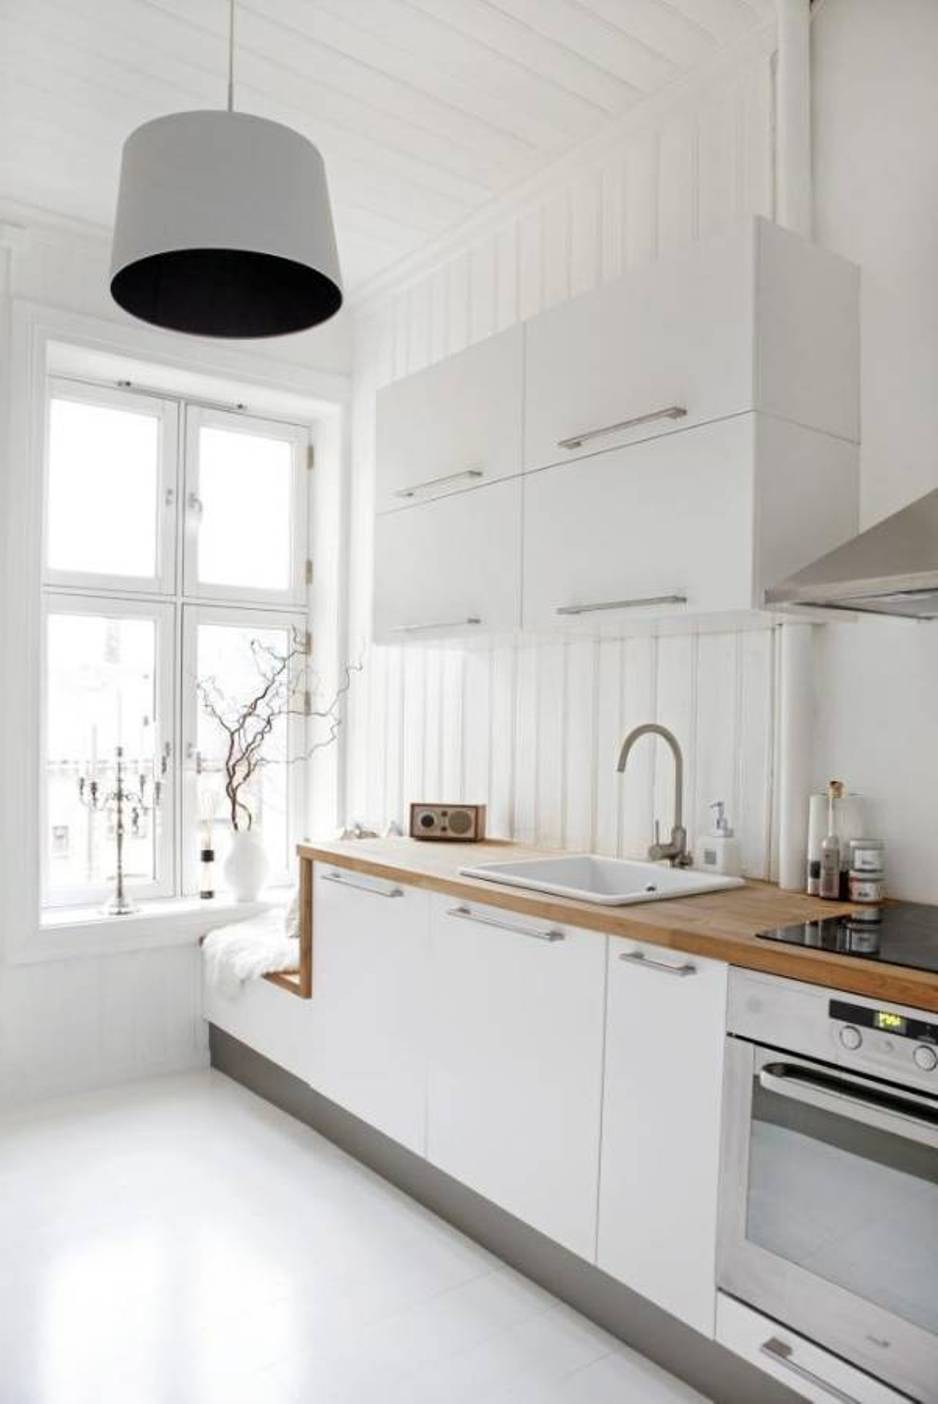 minimalist kitchen interior design. 10 Amazing Scandinavian Kitchen Interior Design Ideas  Minimalist Cabinets Home and Furniture